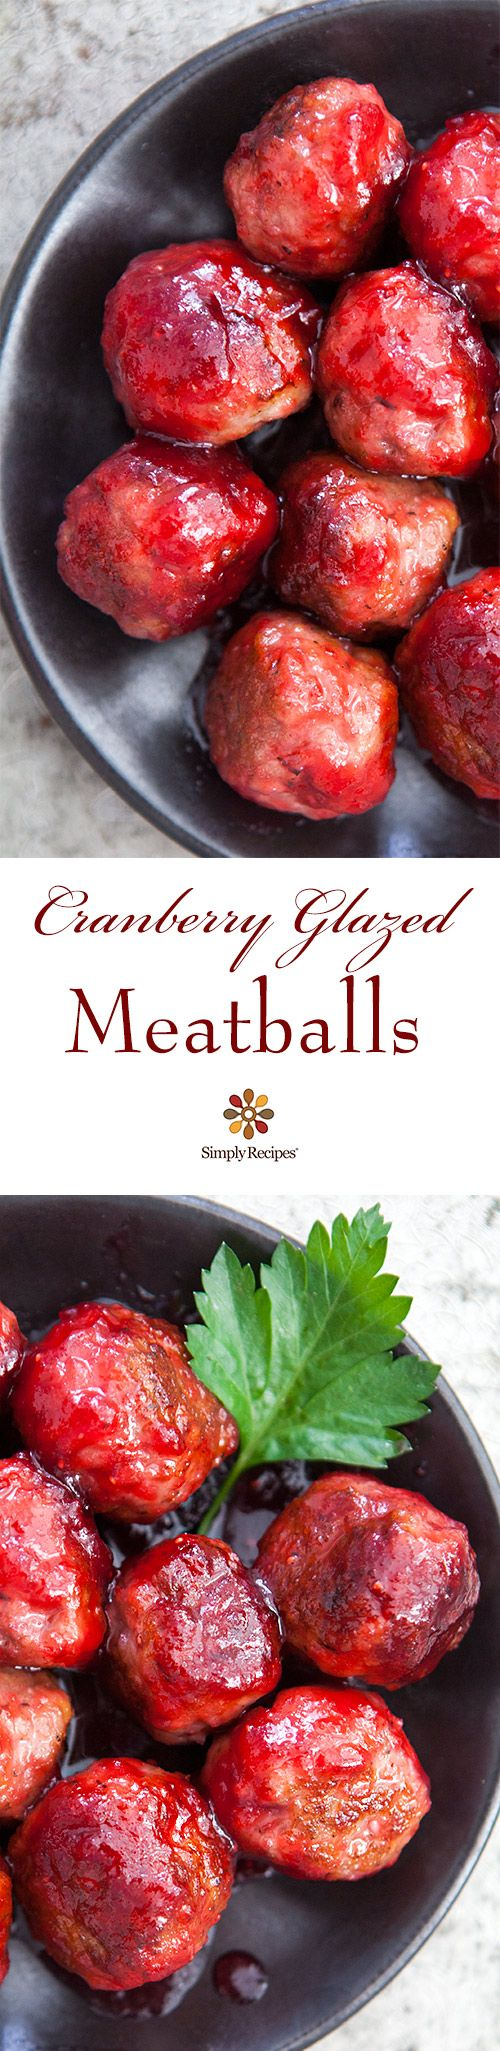 Turkey meatballs, Cranberries and Turkey on Pinterest